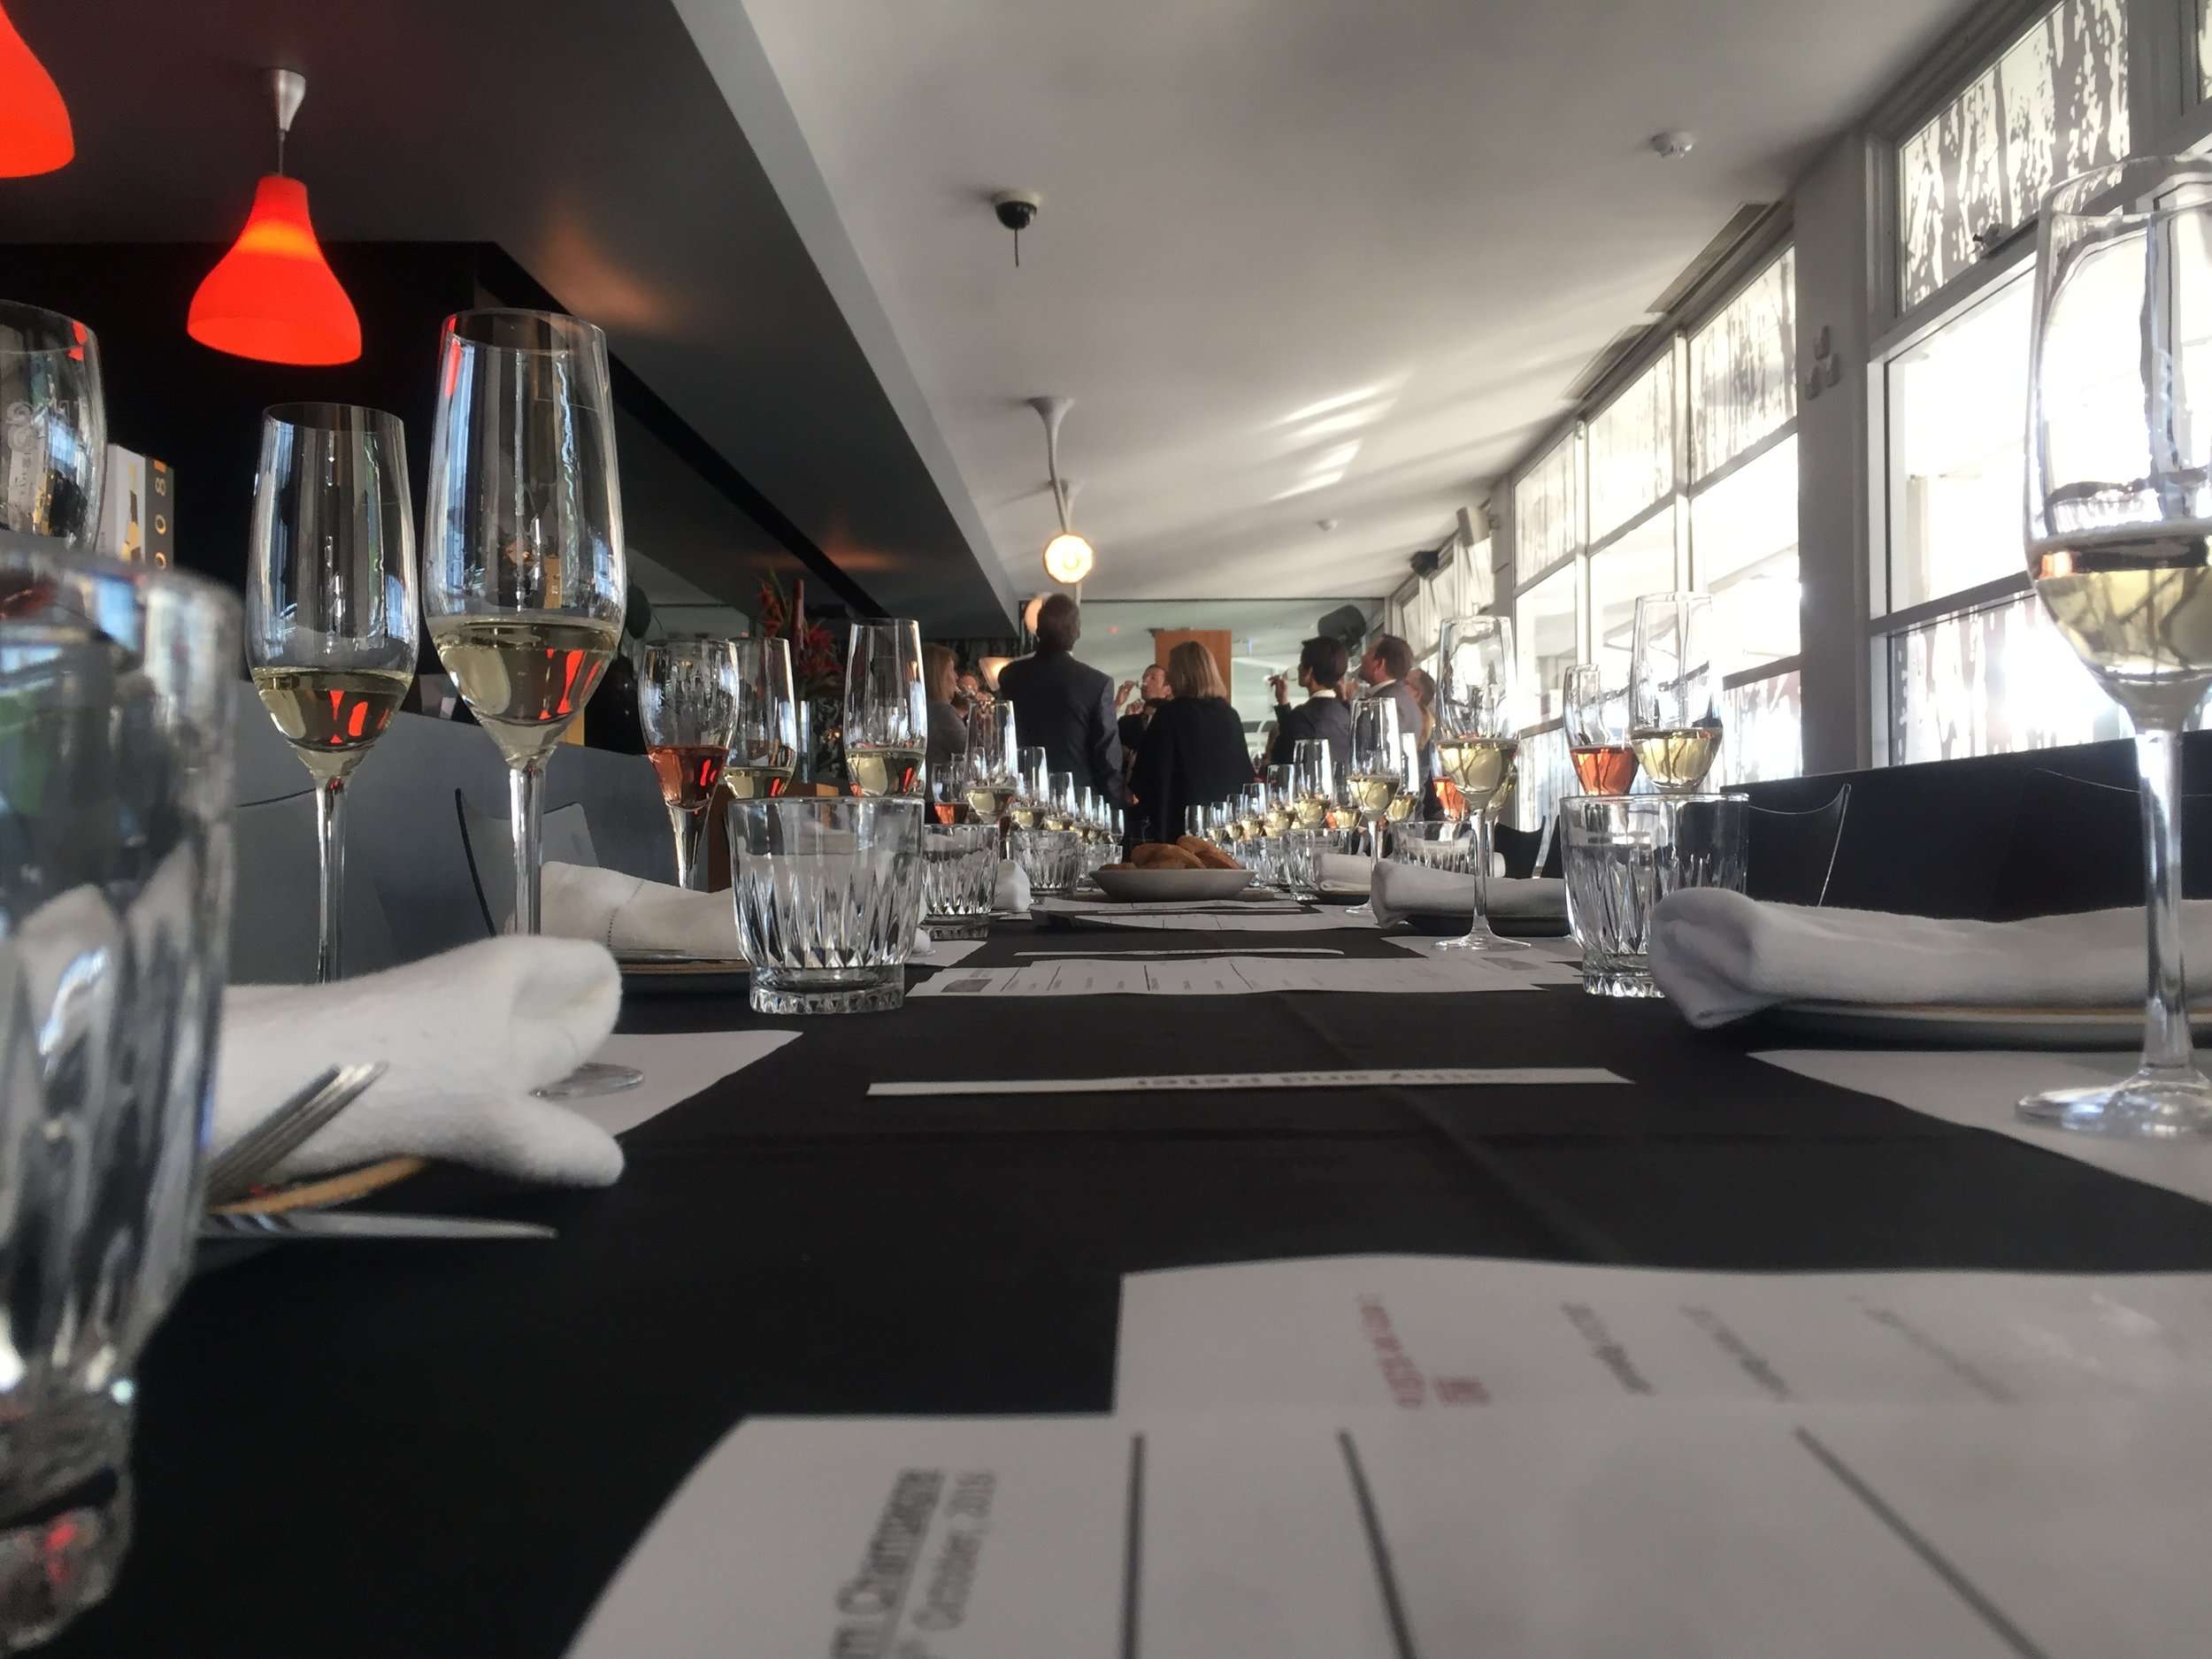 Corporate Functions - We at Cool Wine specialize in catering to all your corporate function needs. For any inquiries please fill out the form below.